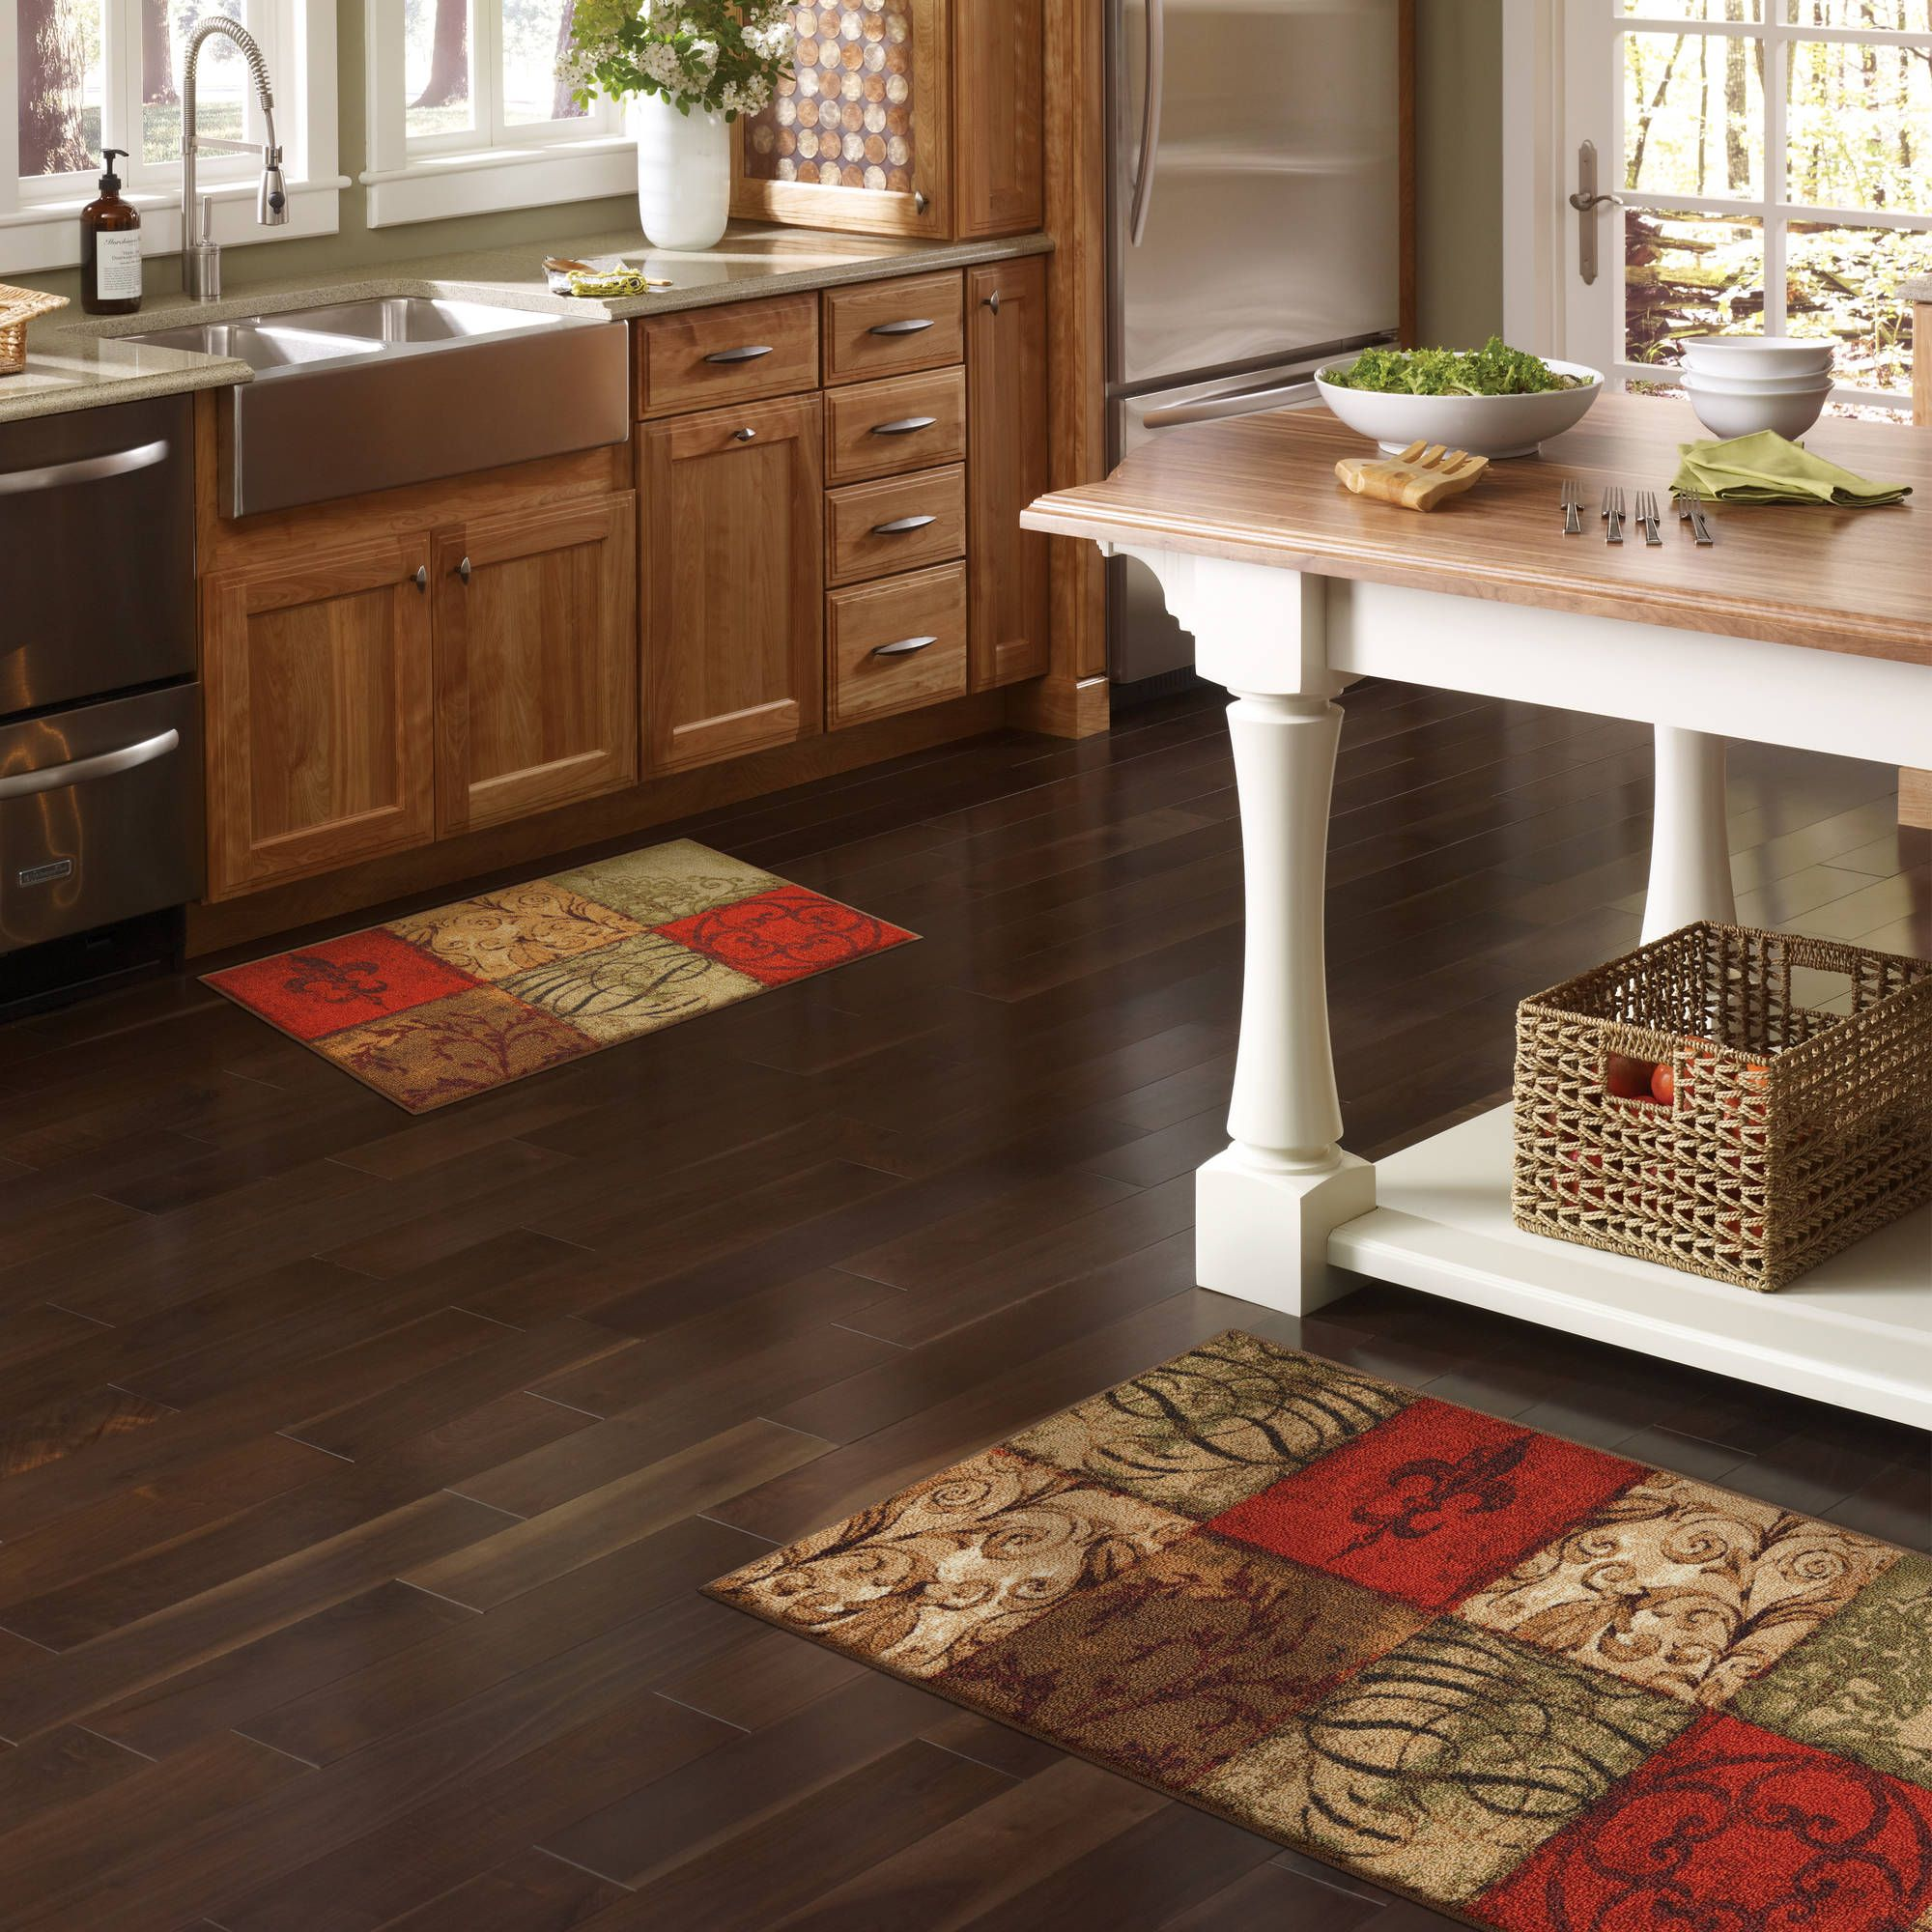 cheap kitchen rugs custom sinks five steps to buy according our taste kitchens